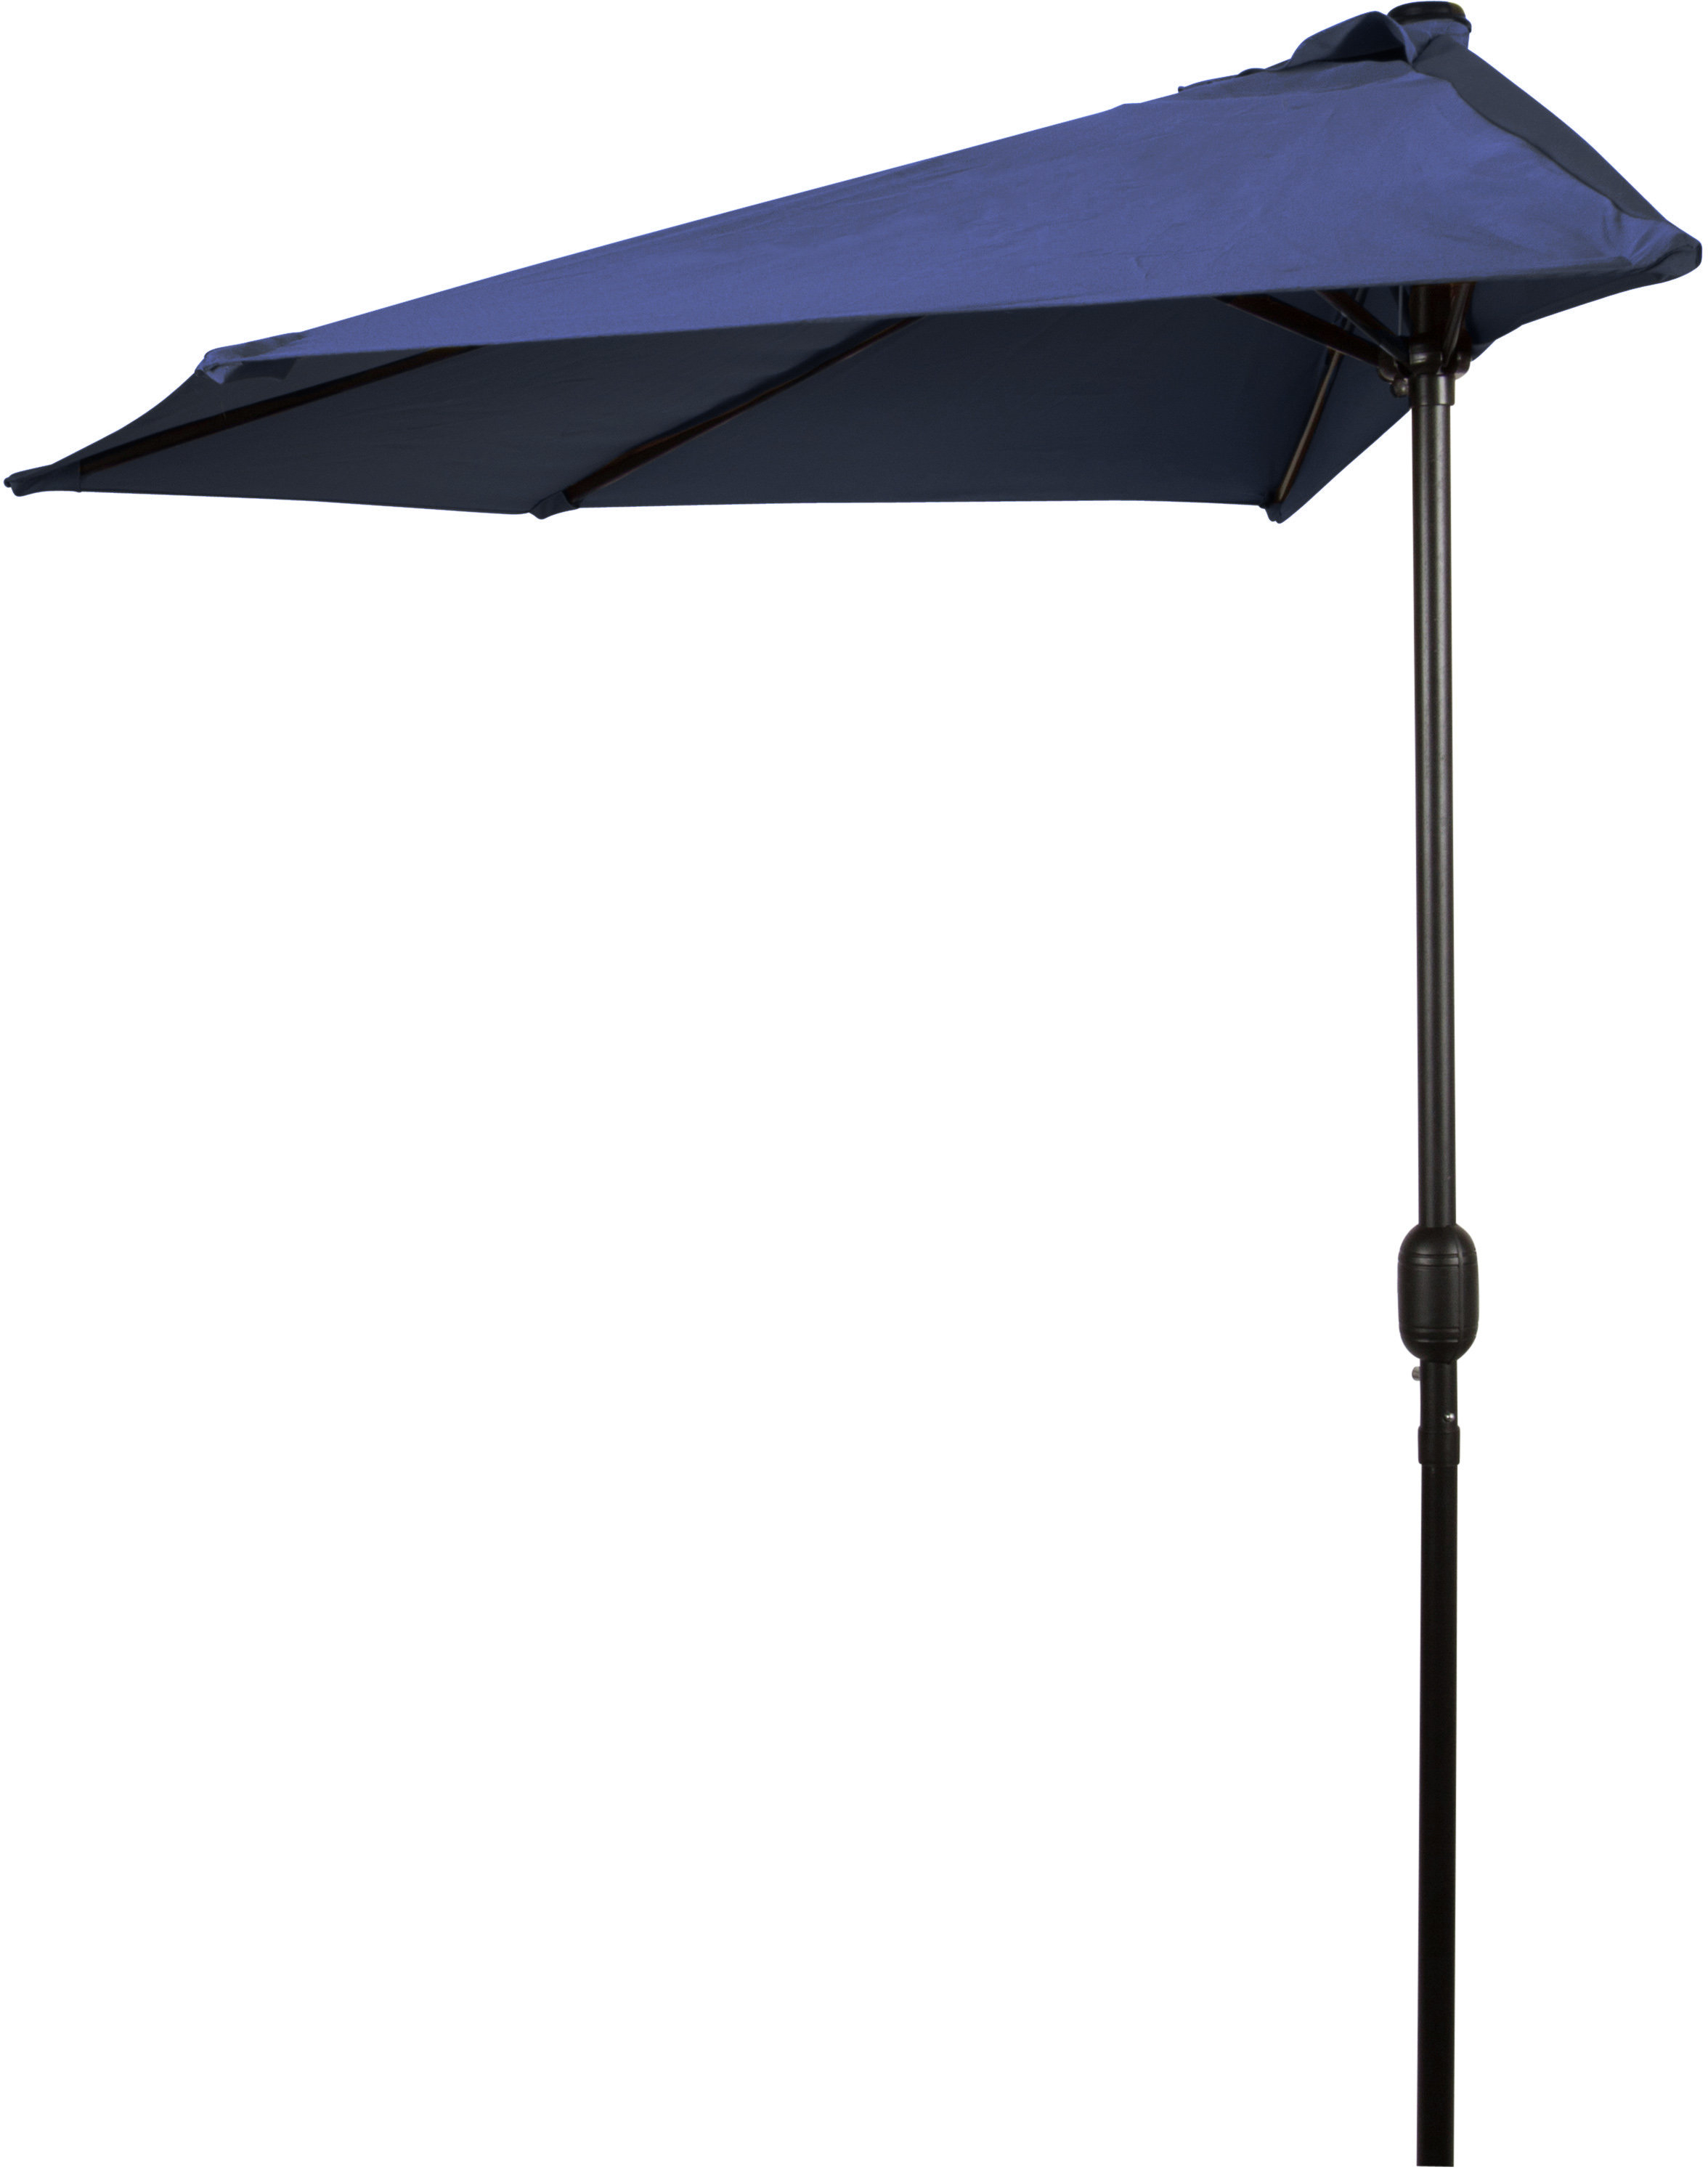 Dade City North Half Market Umbrellas For Trendy Braham 9' Half Market Umbrella (View 6 of 20)